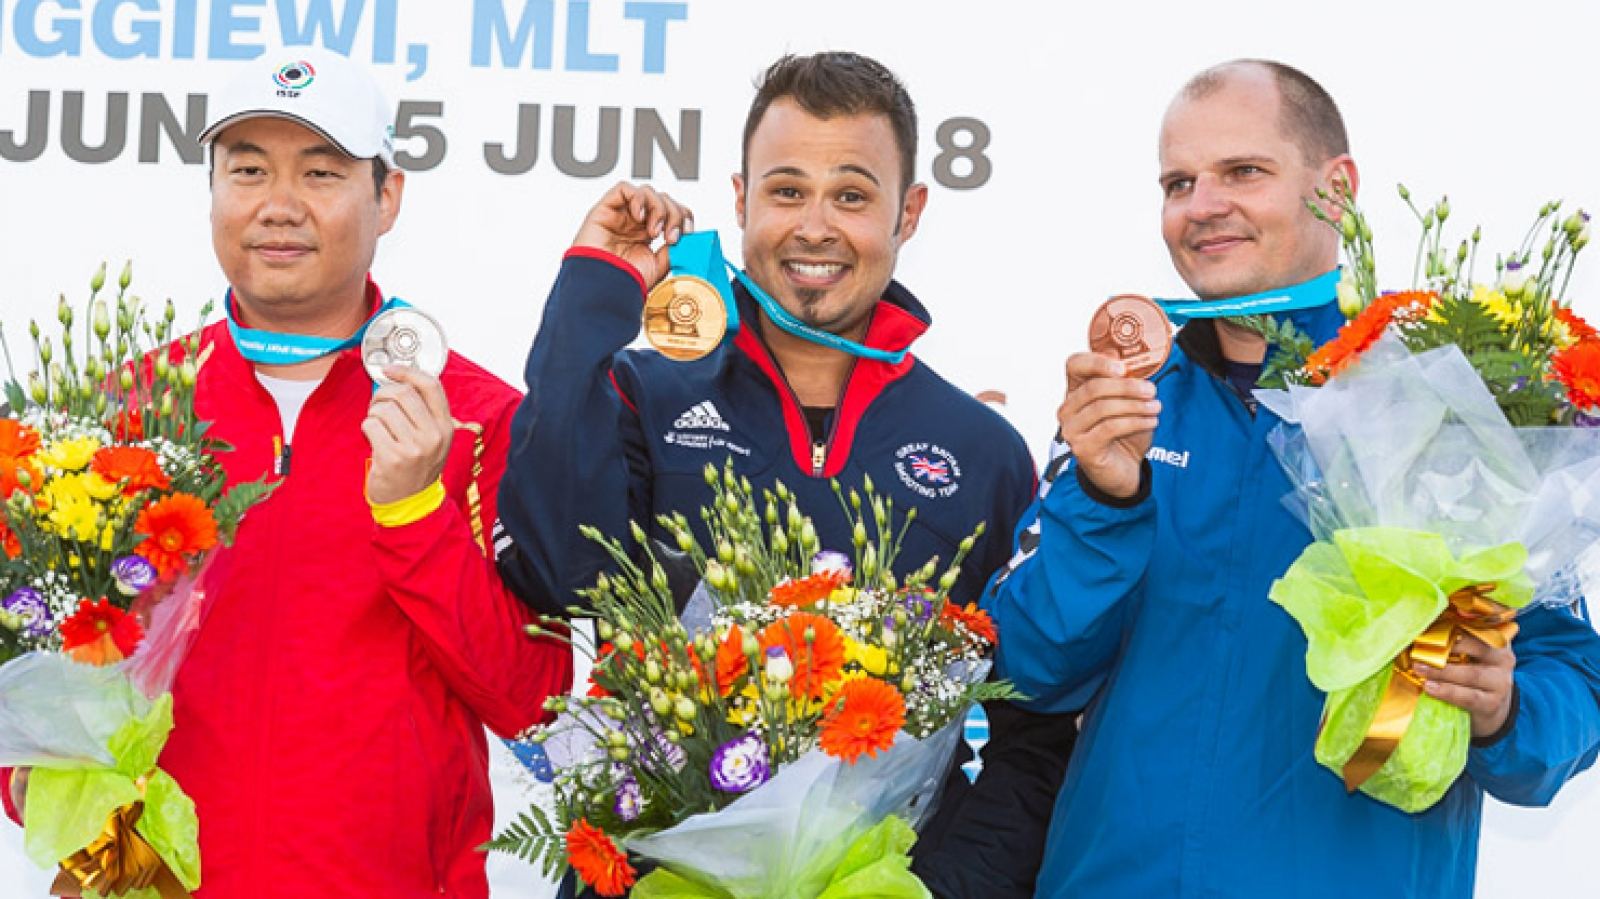 ISSF World Cup Senior en Siggiewi (Malta).